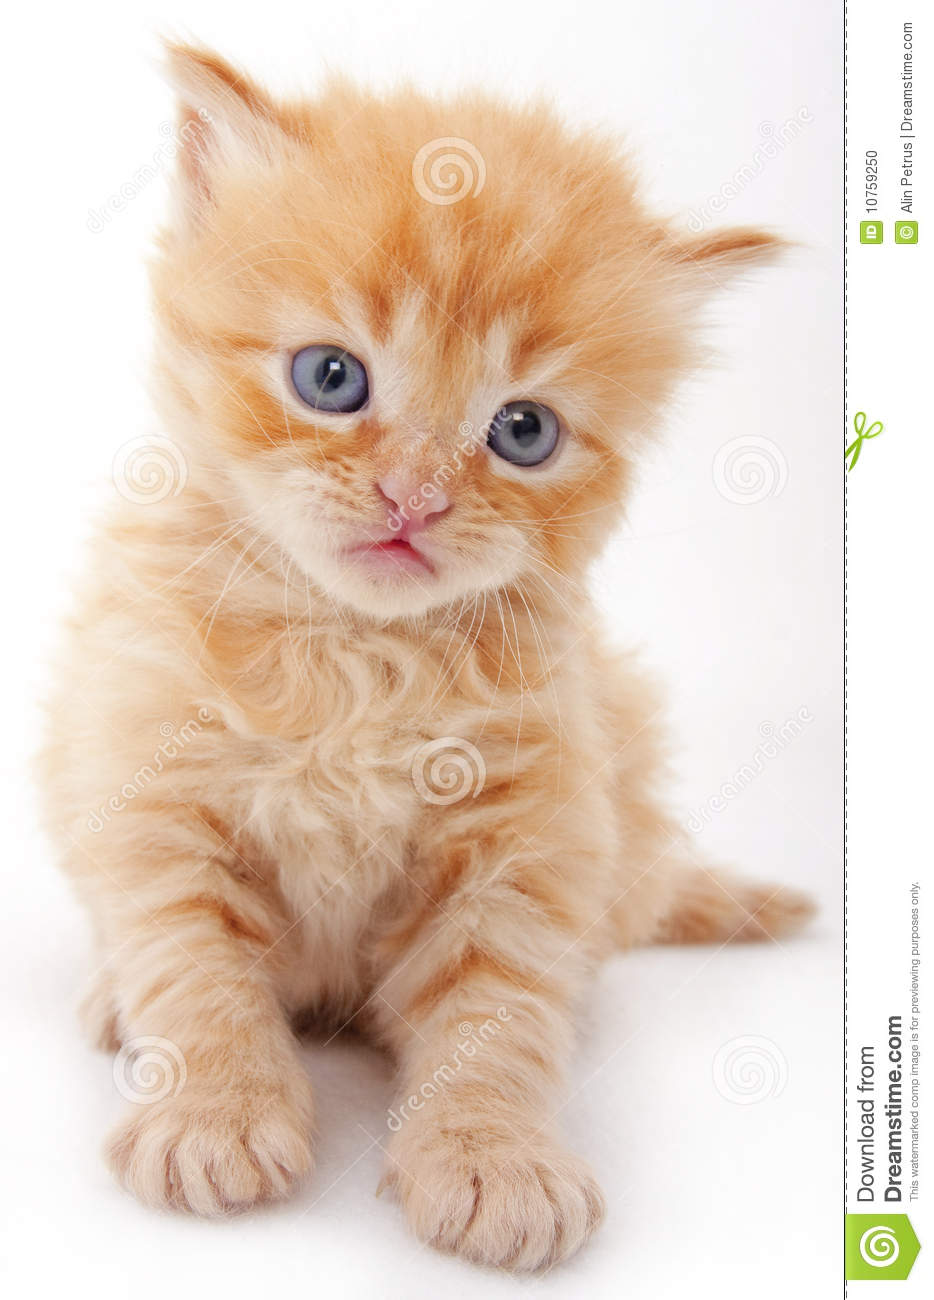 Curious Baby Cat Stock Image